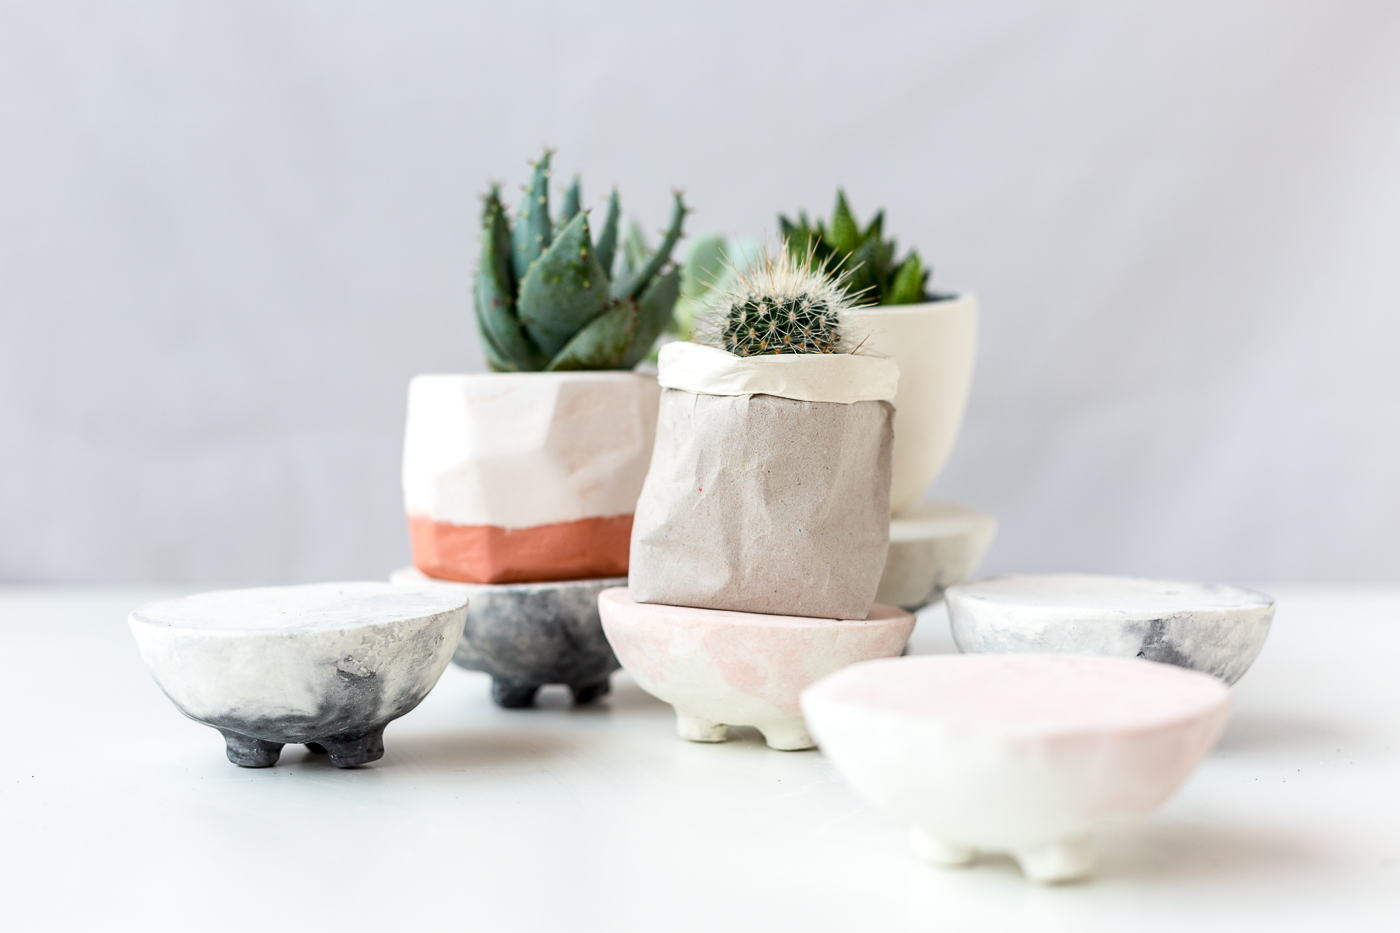 DIY Dyed Marbled Concrete Planter Stands for all your Succulents